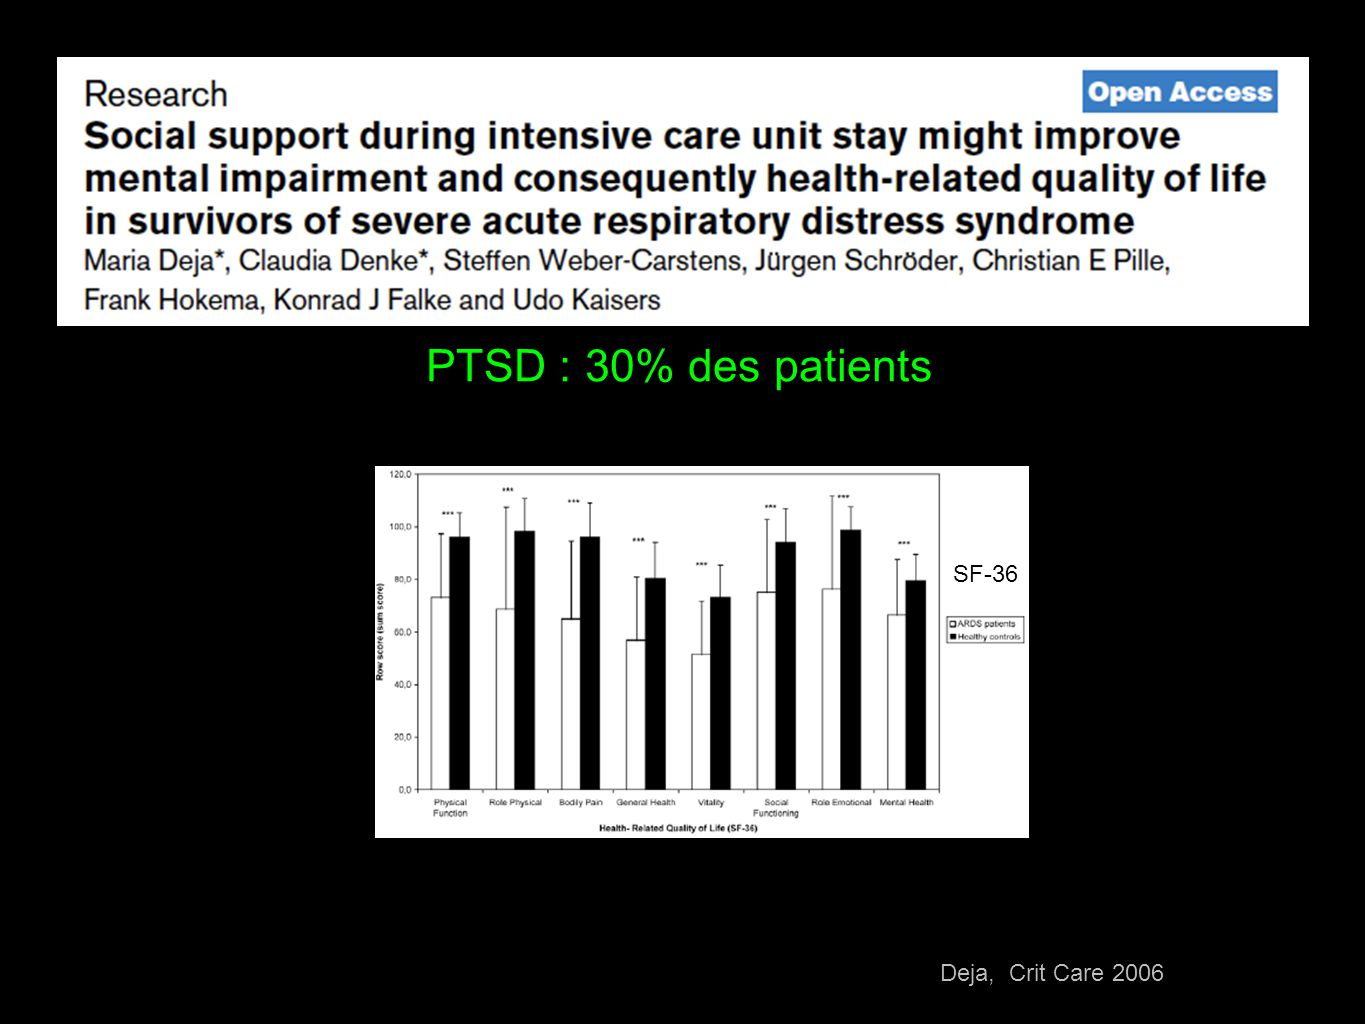 PTSD : 30% des patients SF-36 Deja, Crit Care 2006